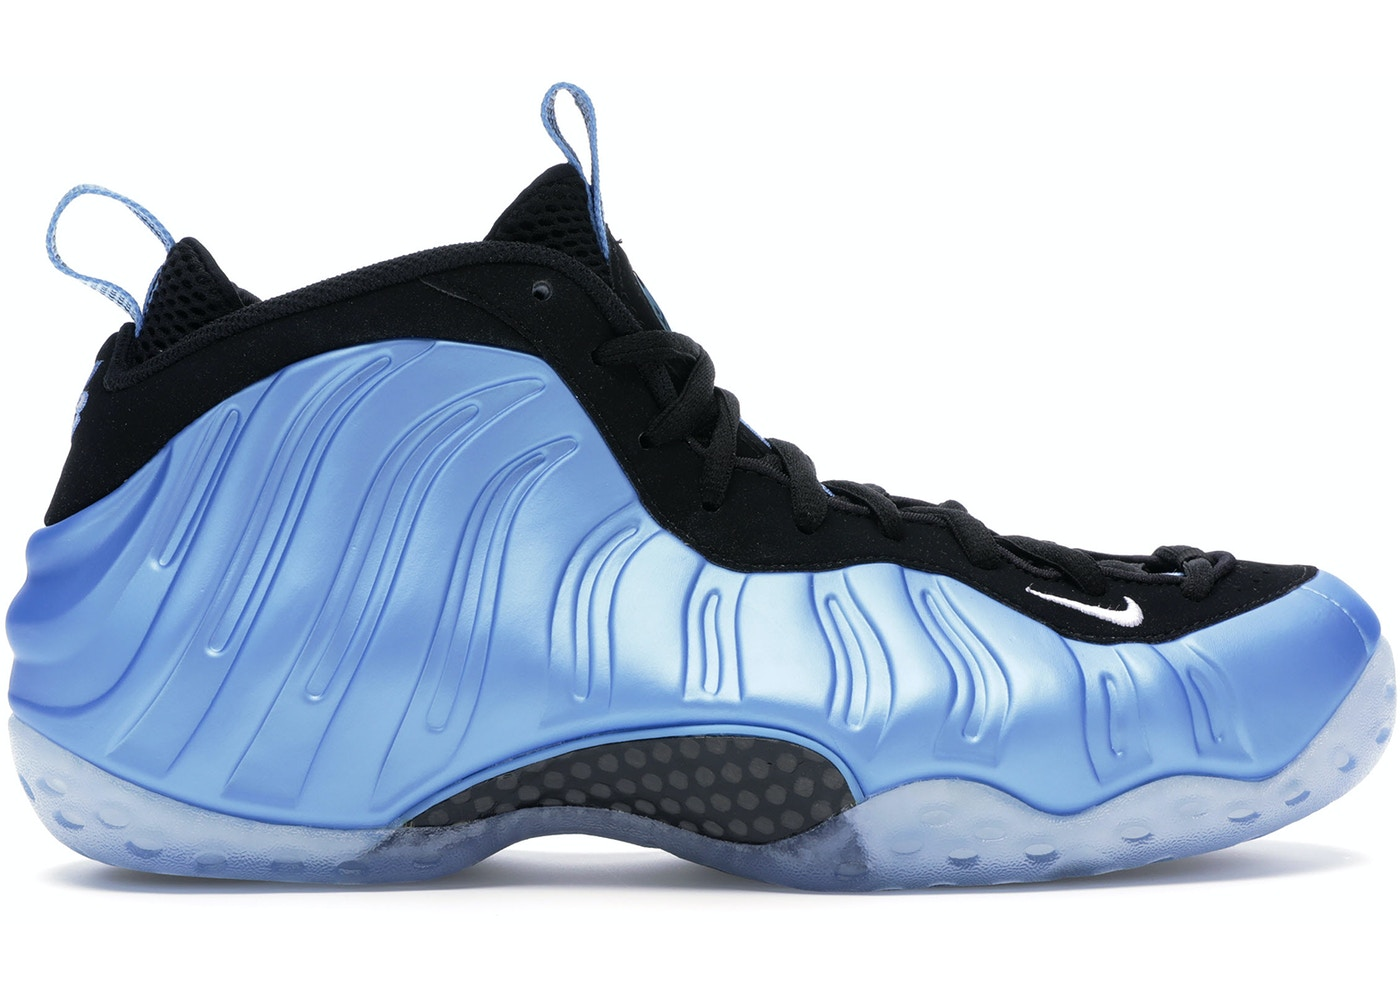 new lifestyle famous brand new high quality Nike Air Foamposite One University Blue - 314996-402